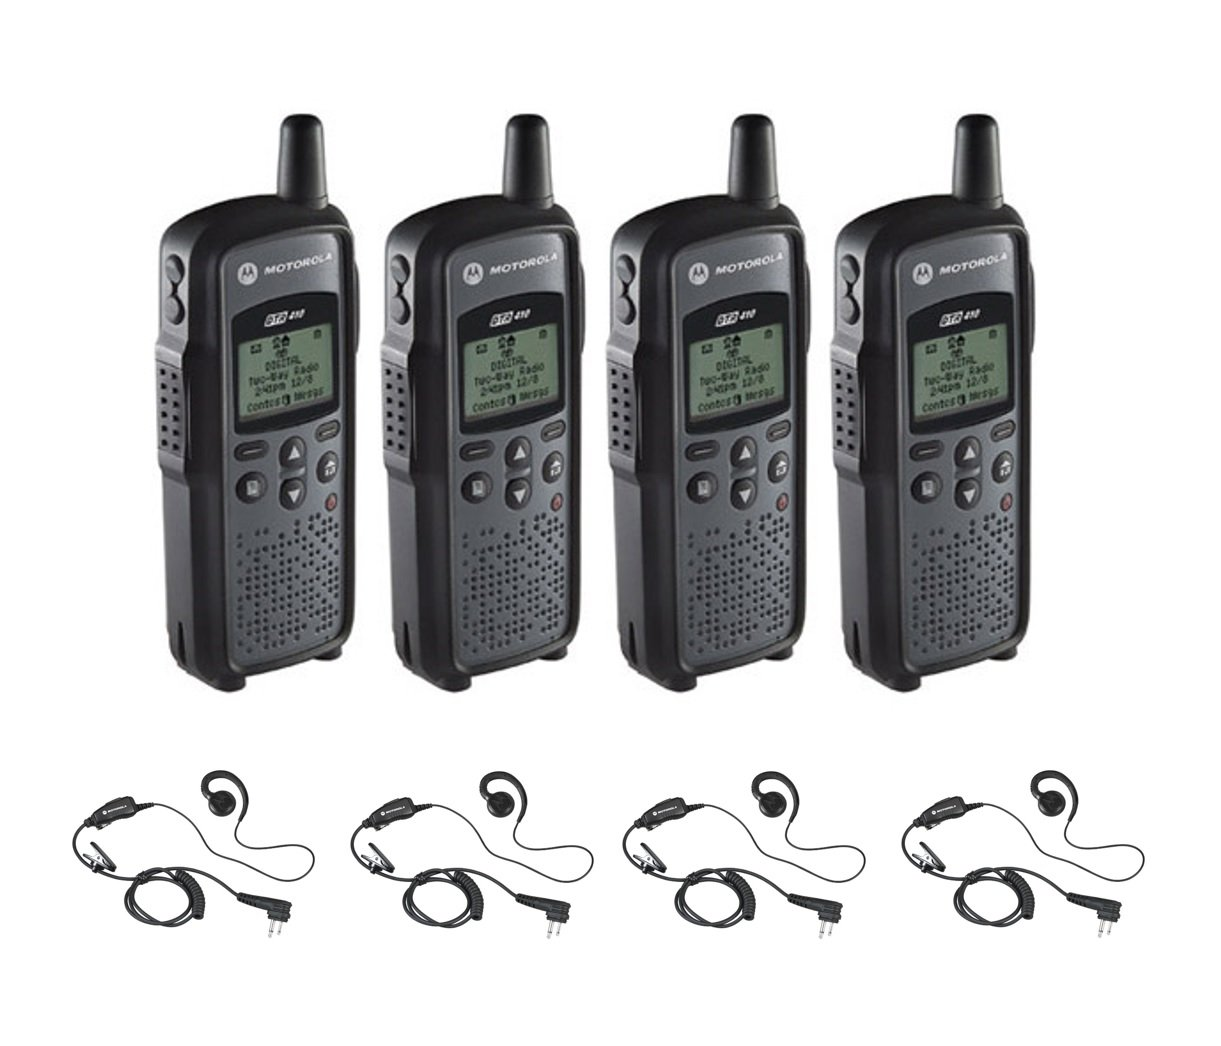 4 Pack of Motorola DTR410 Radios with 4 Push To Talk (PTT) earpieces.